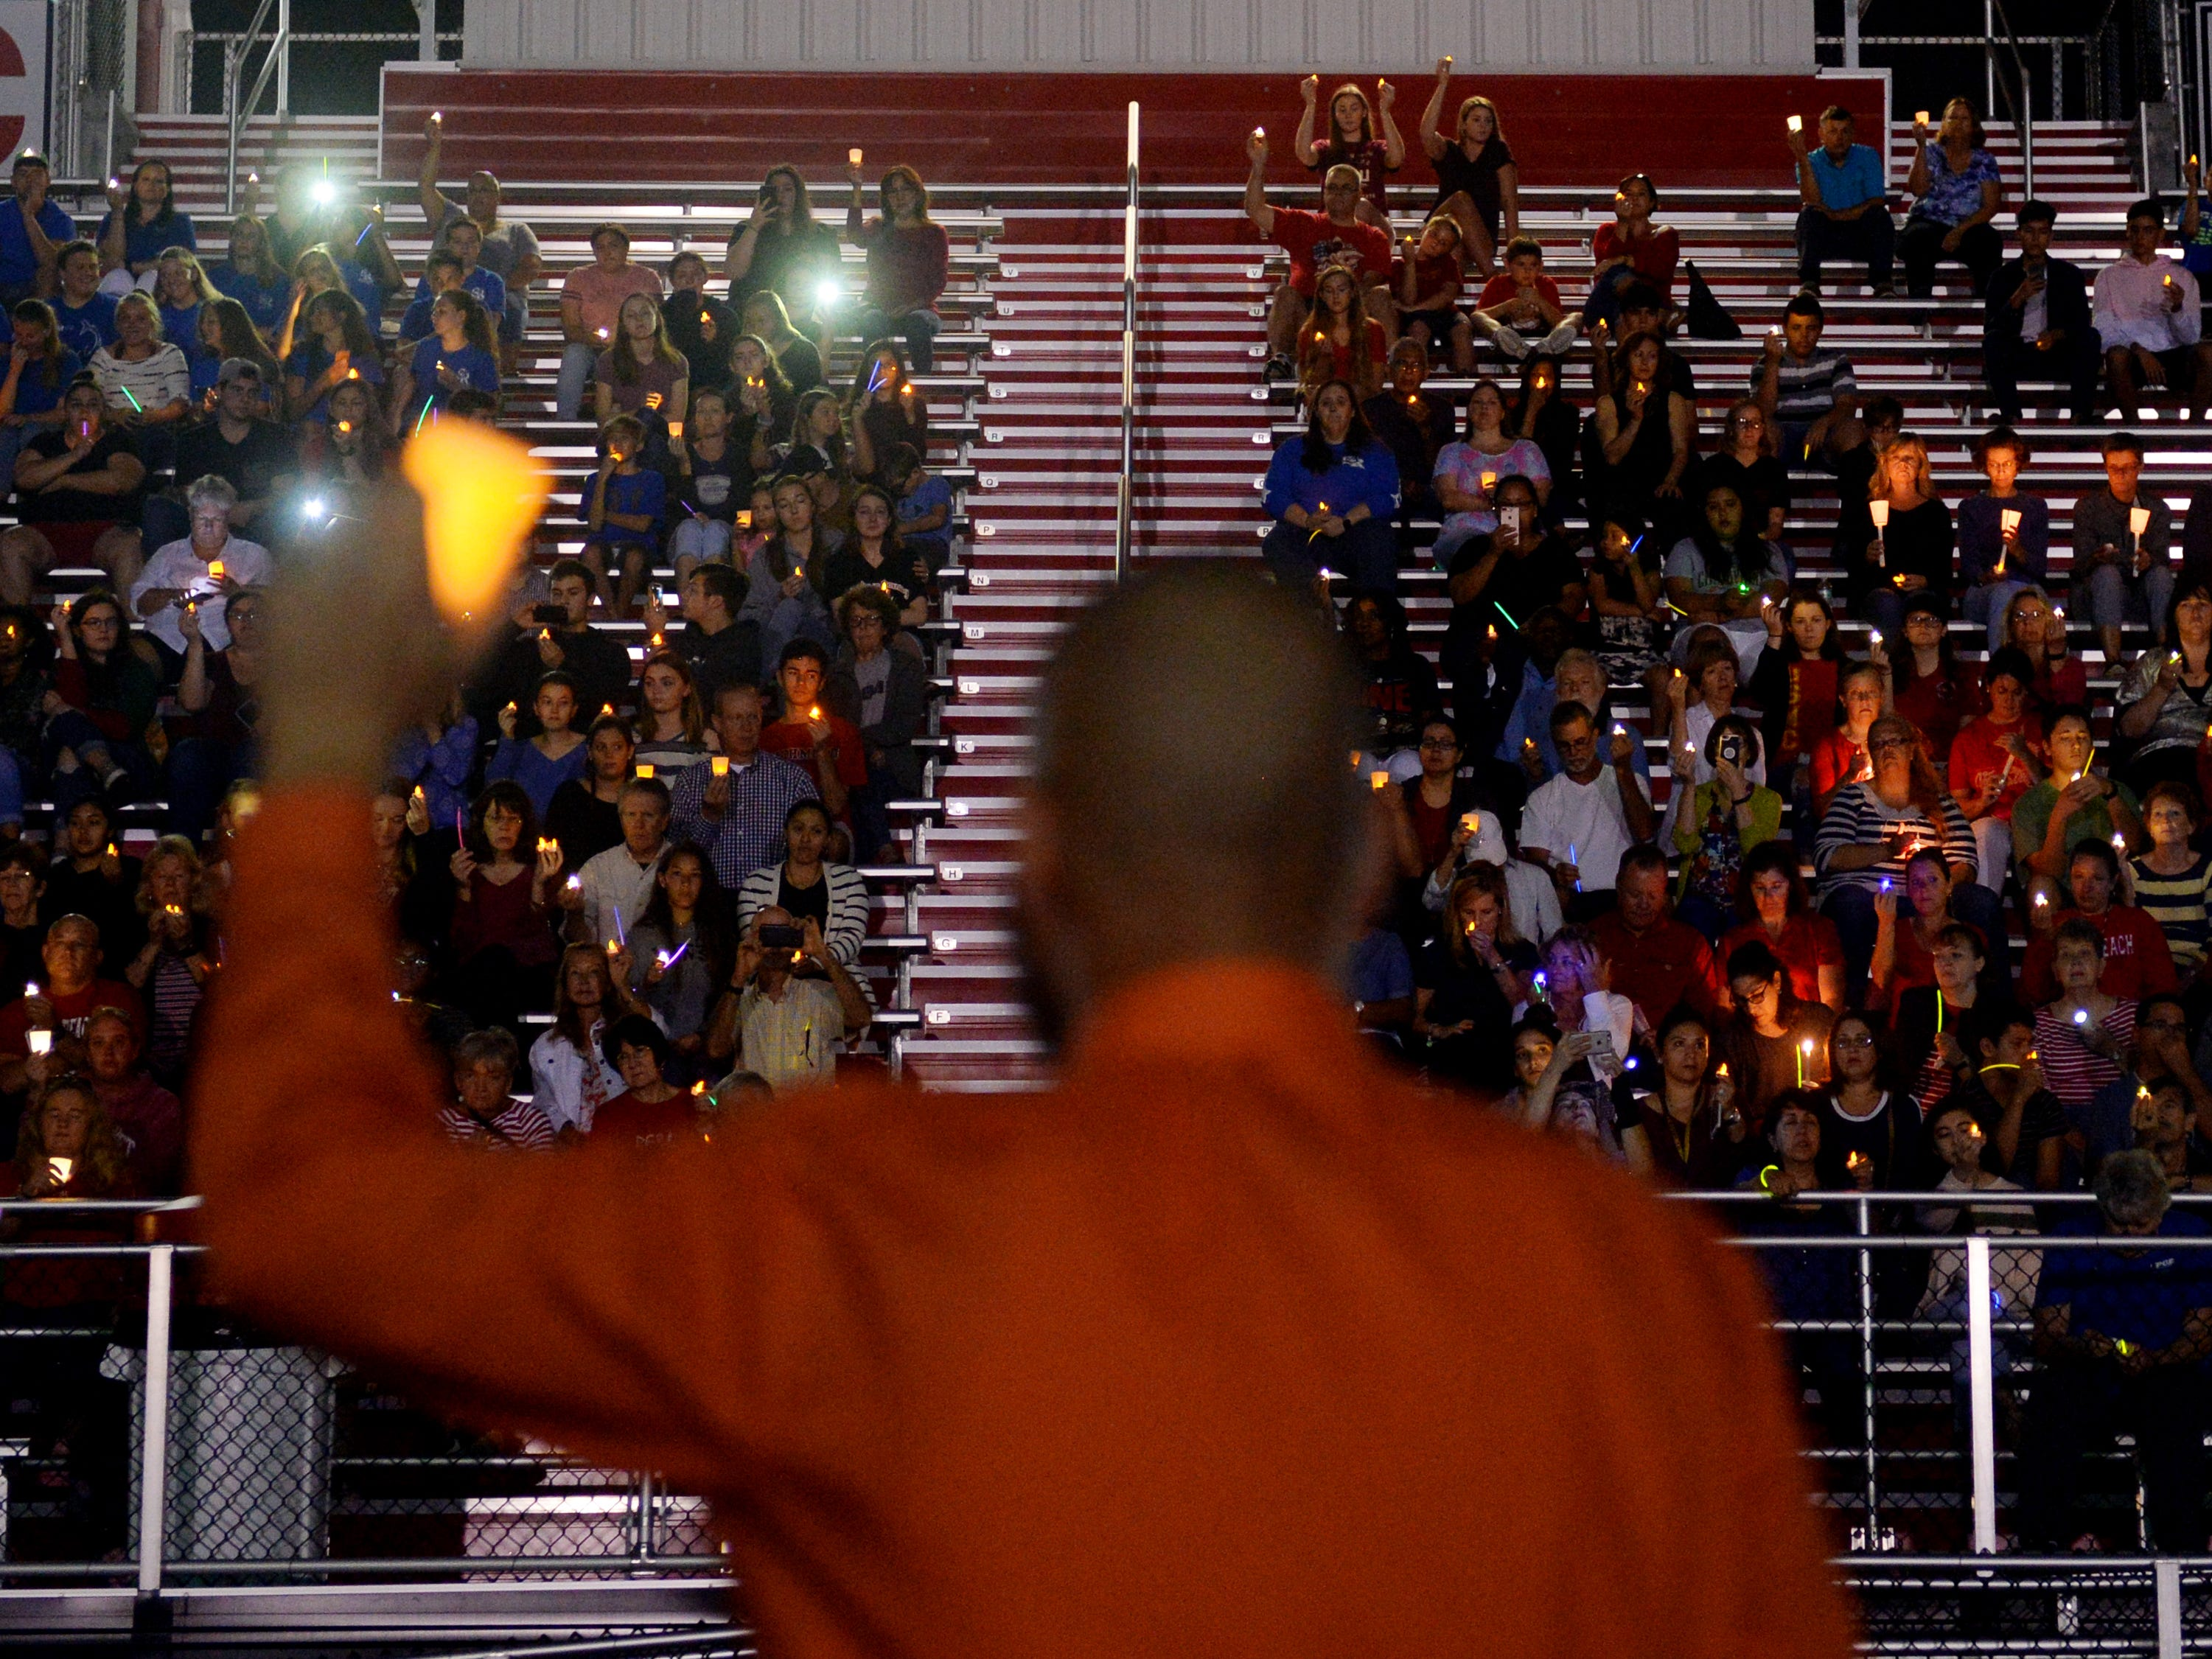 About 300 people gathered Monday, Feb. 19, 2018, at the Citrus Bowl at Vero Beach High School for a candlelight vigil in honor of those who died last week in the Marjory Stoneman Douglas High School shooting in Parkland. The event was organized by the Florida PTA and similar vigils were held in counties across the state. Vigils began promptly at 7 p.m. in 15 counties: Alachua, Broward, Duval, Escambia, Hillsborough, Indian River, Leon, Martin, Miami-Dade, Orange, Palm Beach, Pasco, Pinellas, Seminole and Volusia. Some counties had more than one vigil.